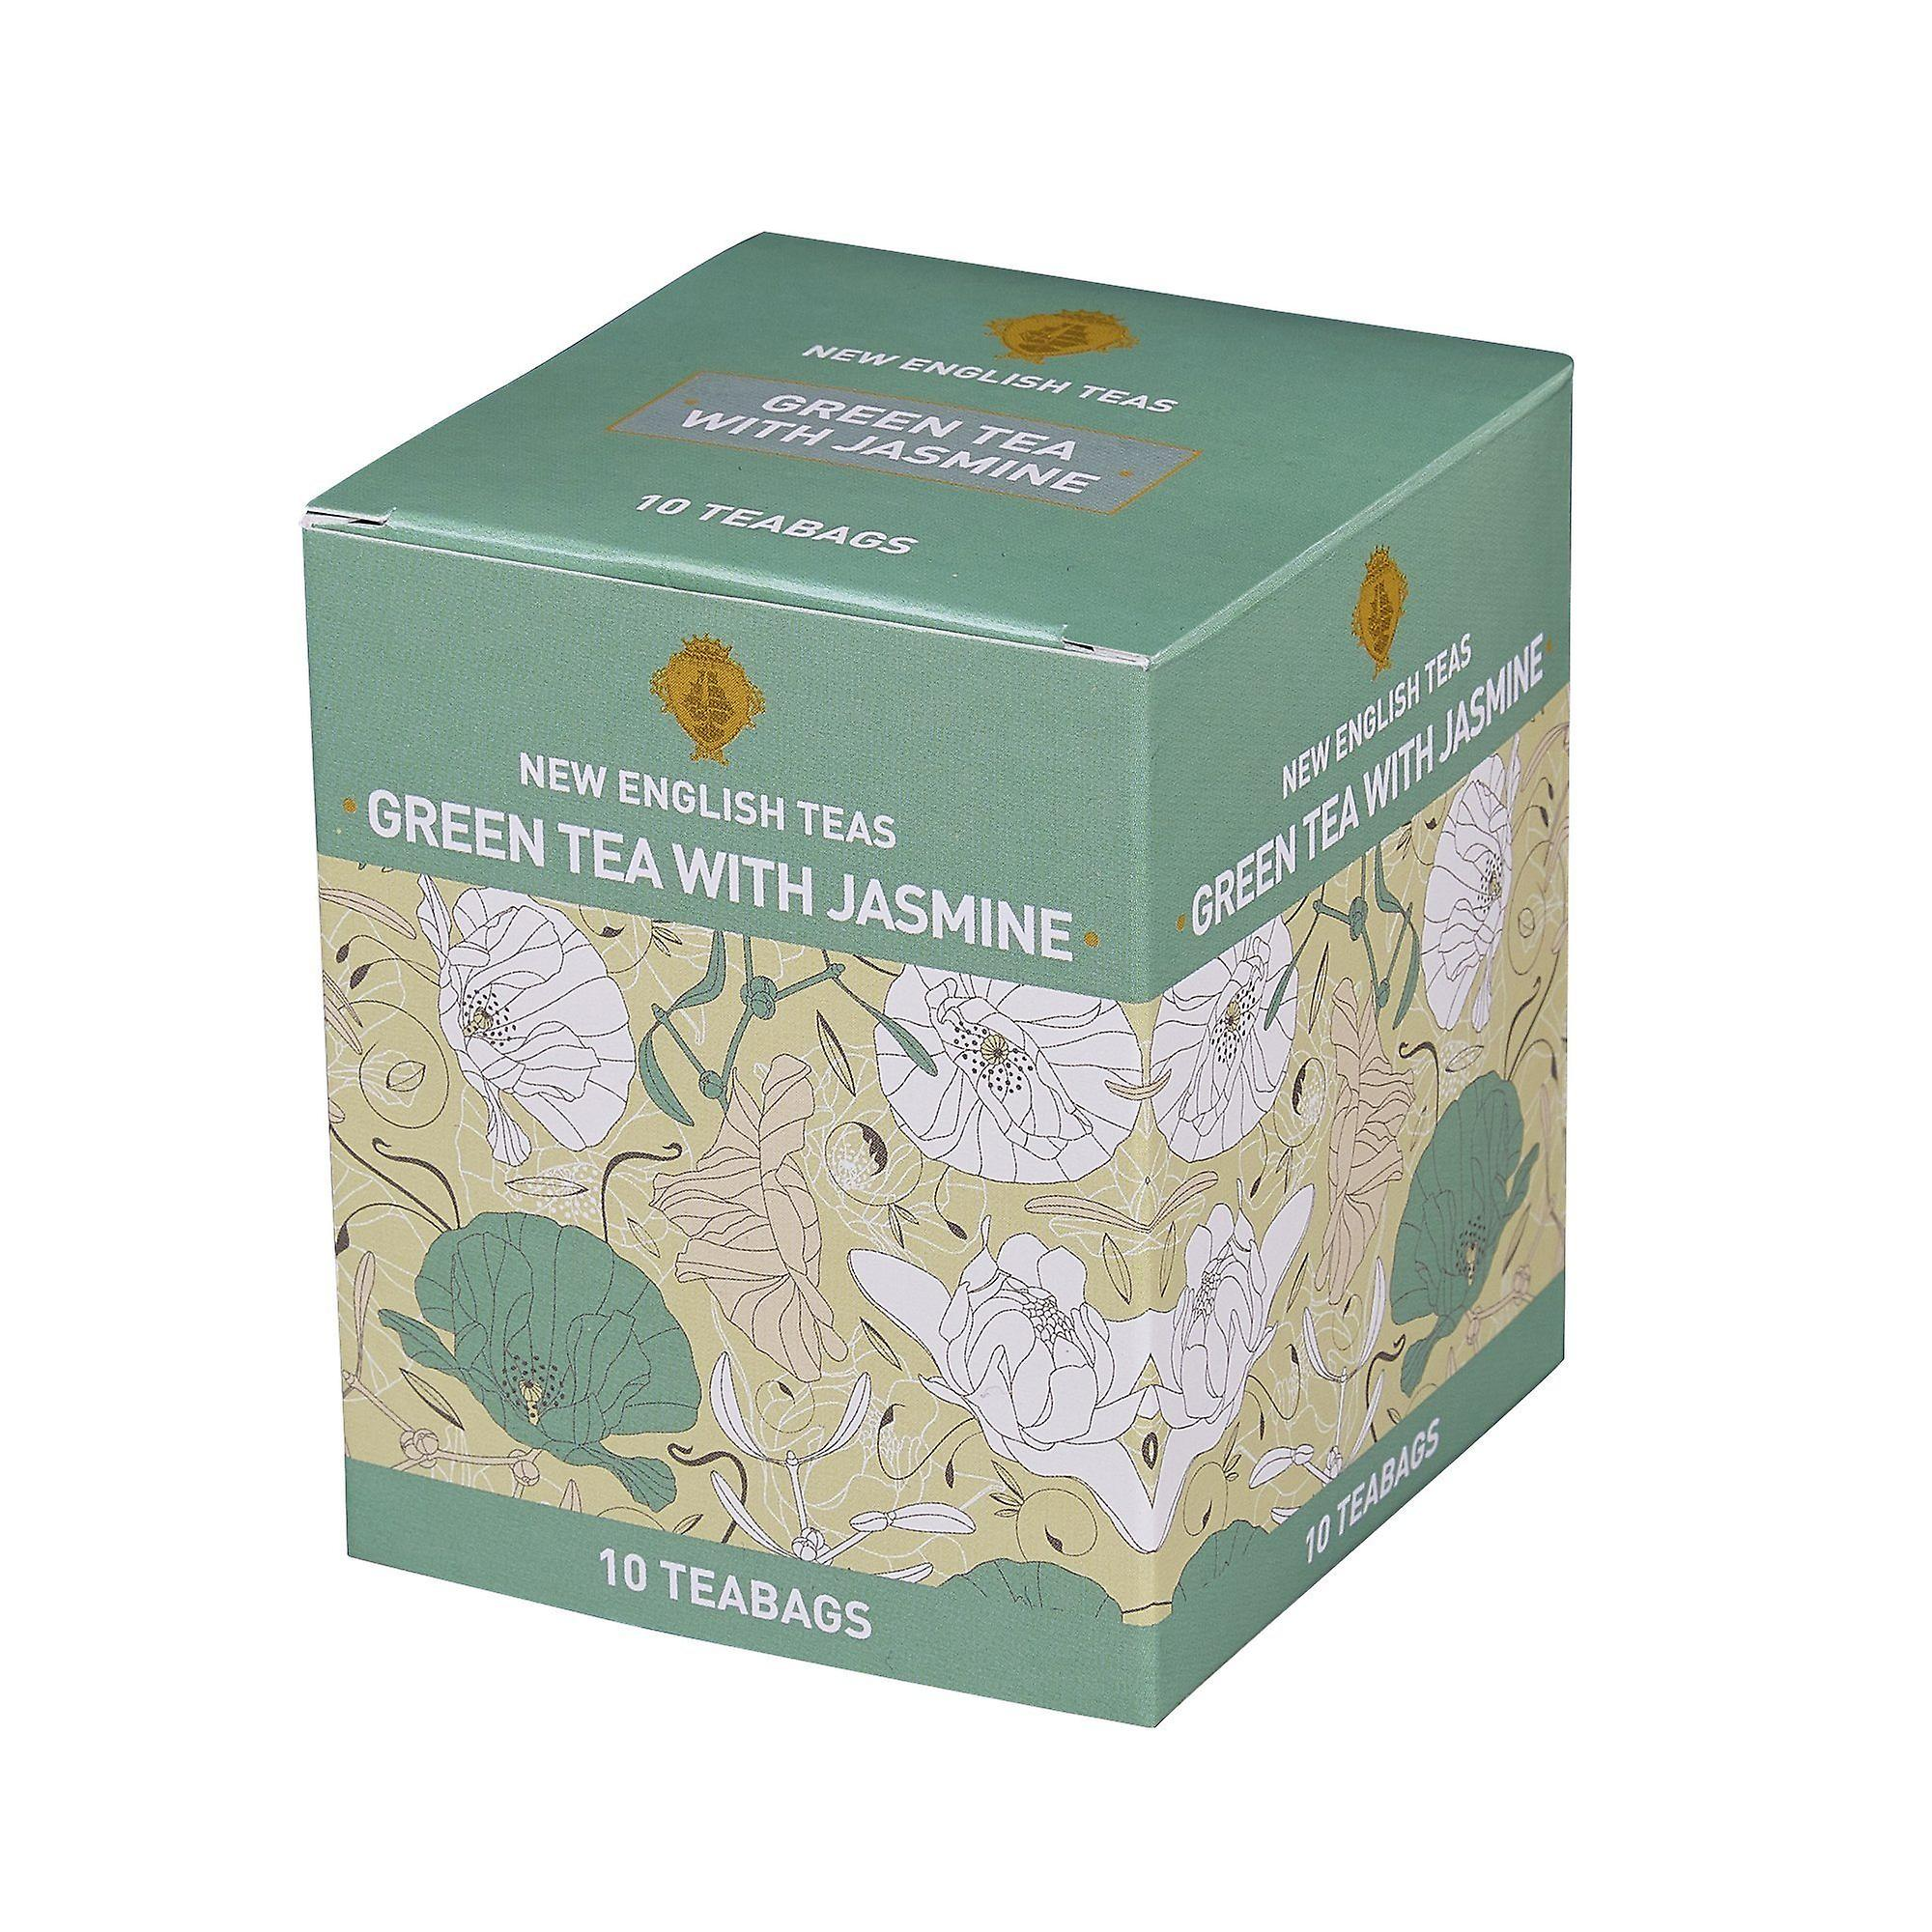 Green tea with jasmine 10 individually wrapped teabags